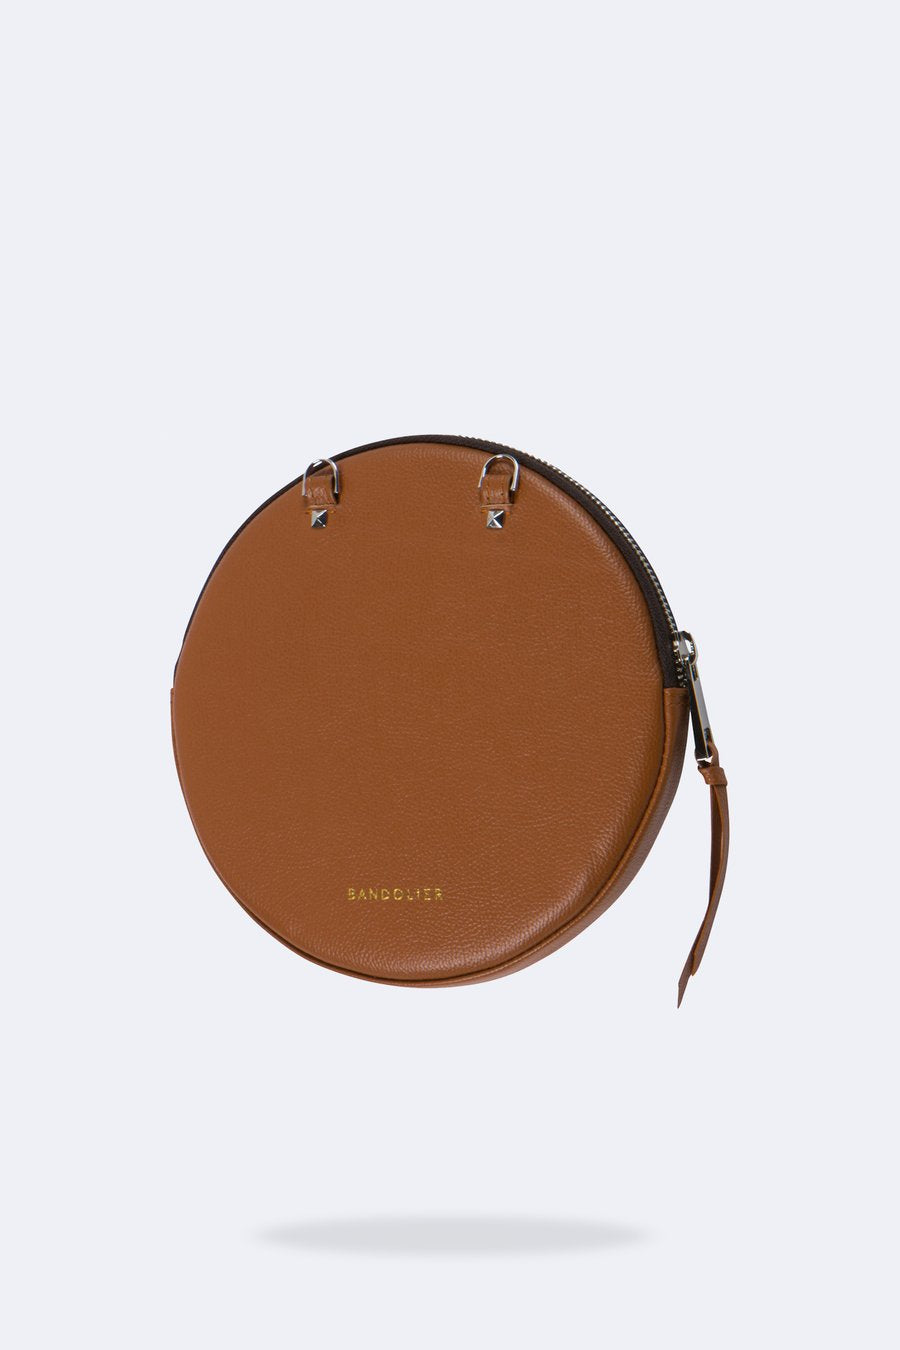 The Large Round Pouch in Sienna/Silver